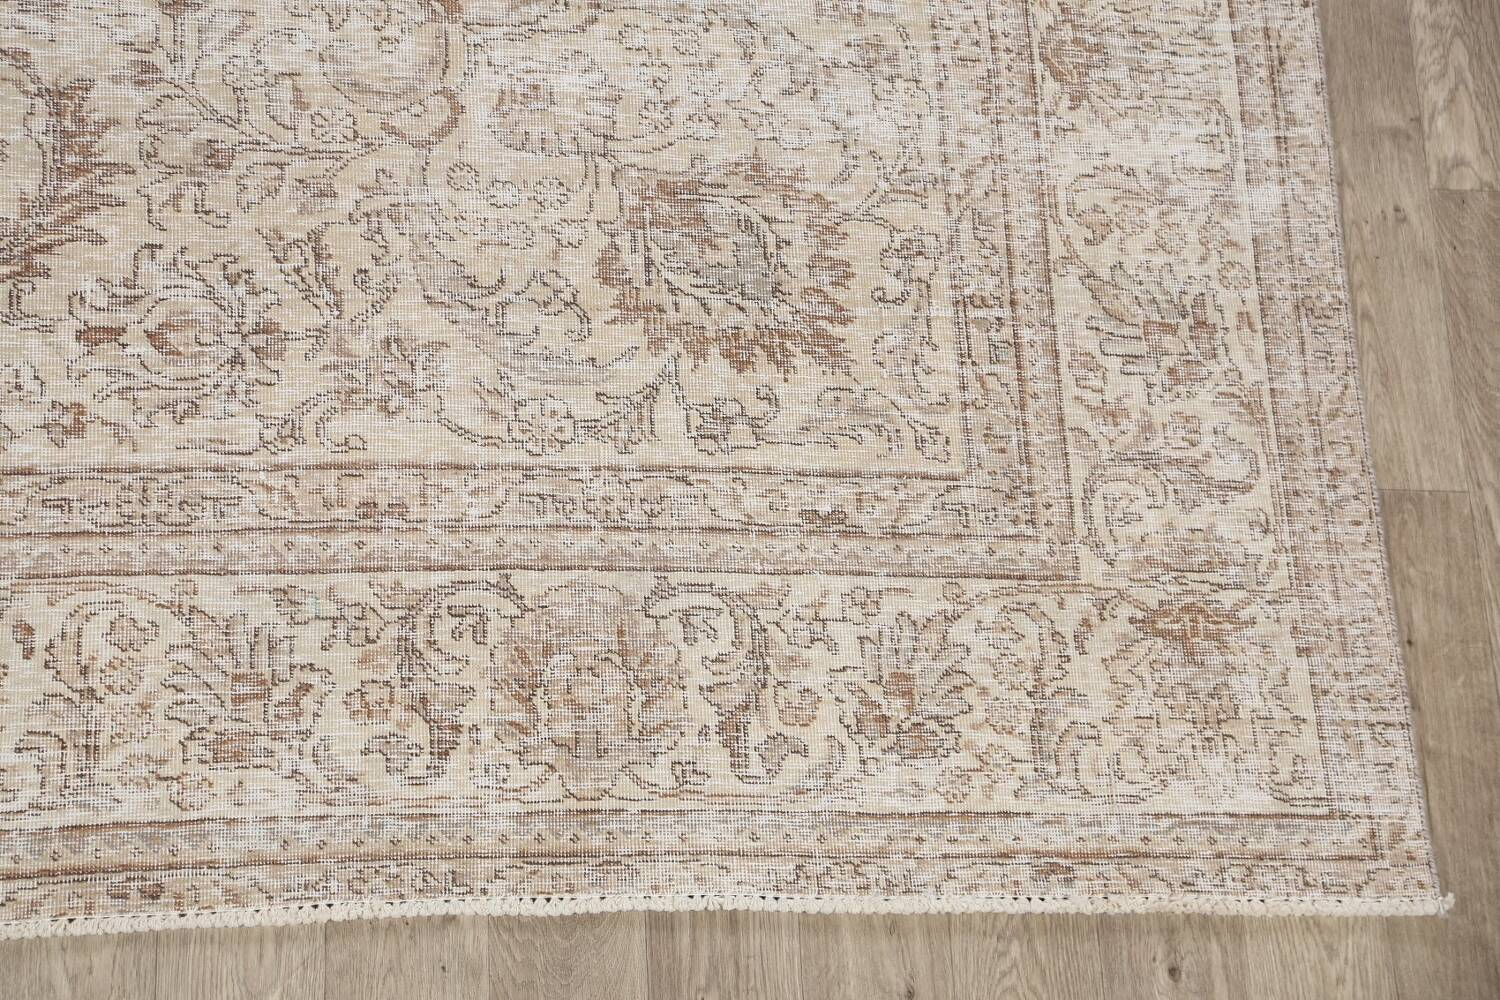 Antique Muted Floral Tabriz Persian Area Rug 9x12 image 5